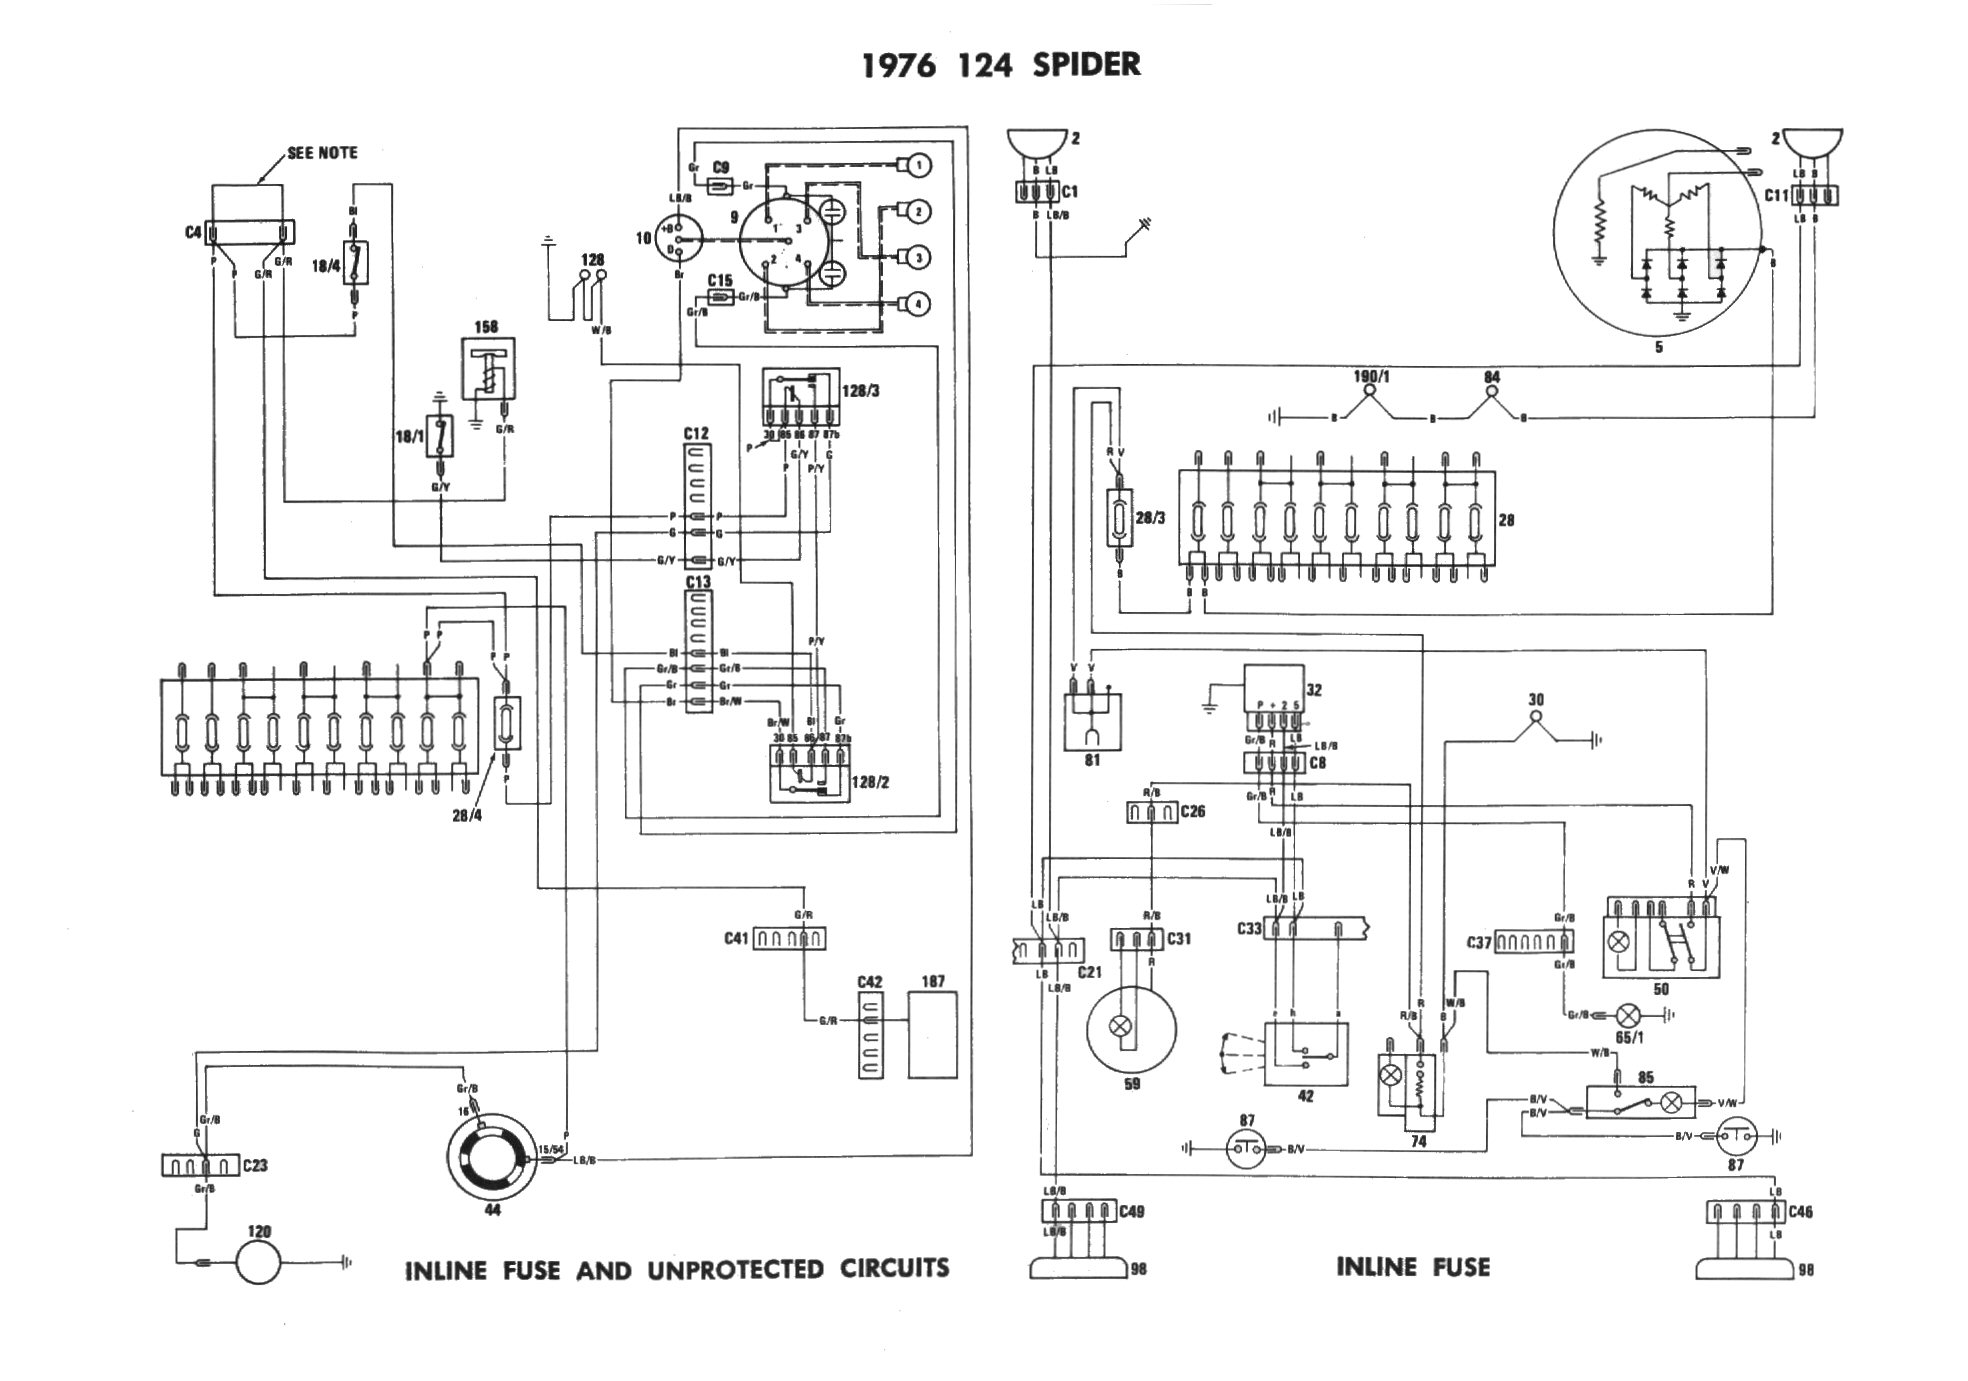 7 1976 corvette wiring diagram efcaviation com 1979 corvette wiring diagram at webbmarketing.co